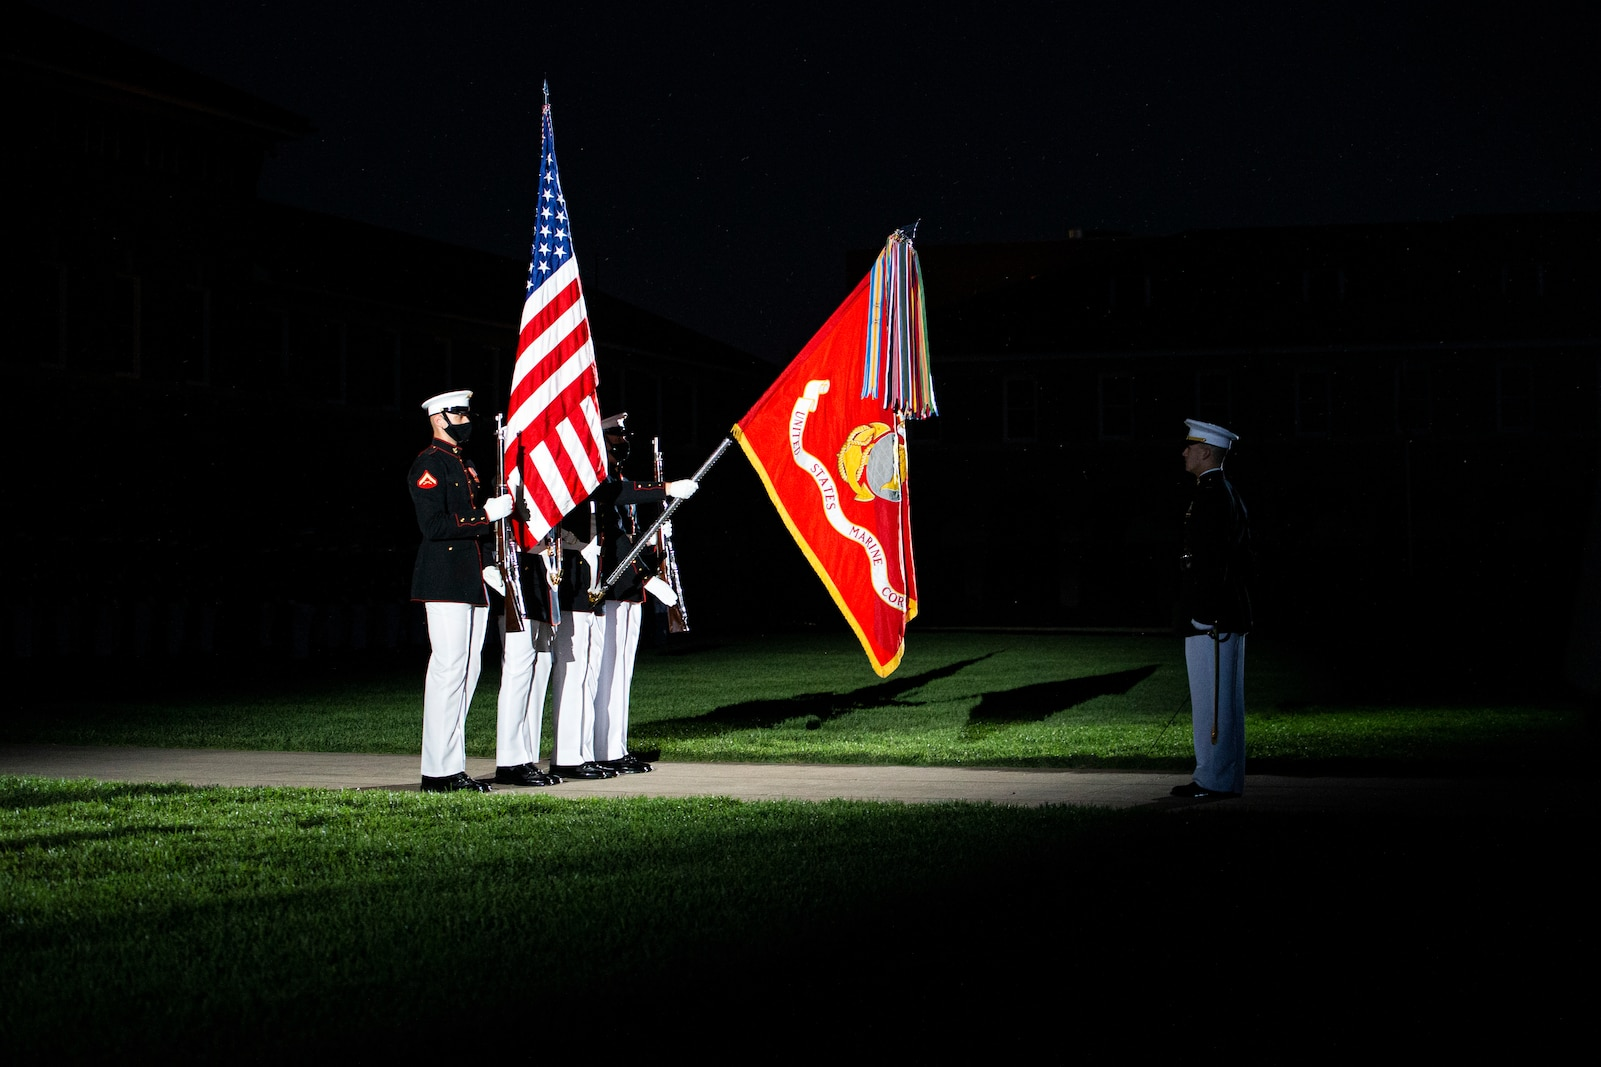 Marines with the Official U.S. Marine Corps Color Guard present the colors during the Friday Evening Parade at Marine Barracks Washington, June 4, 2021.